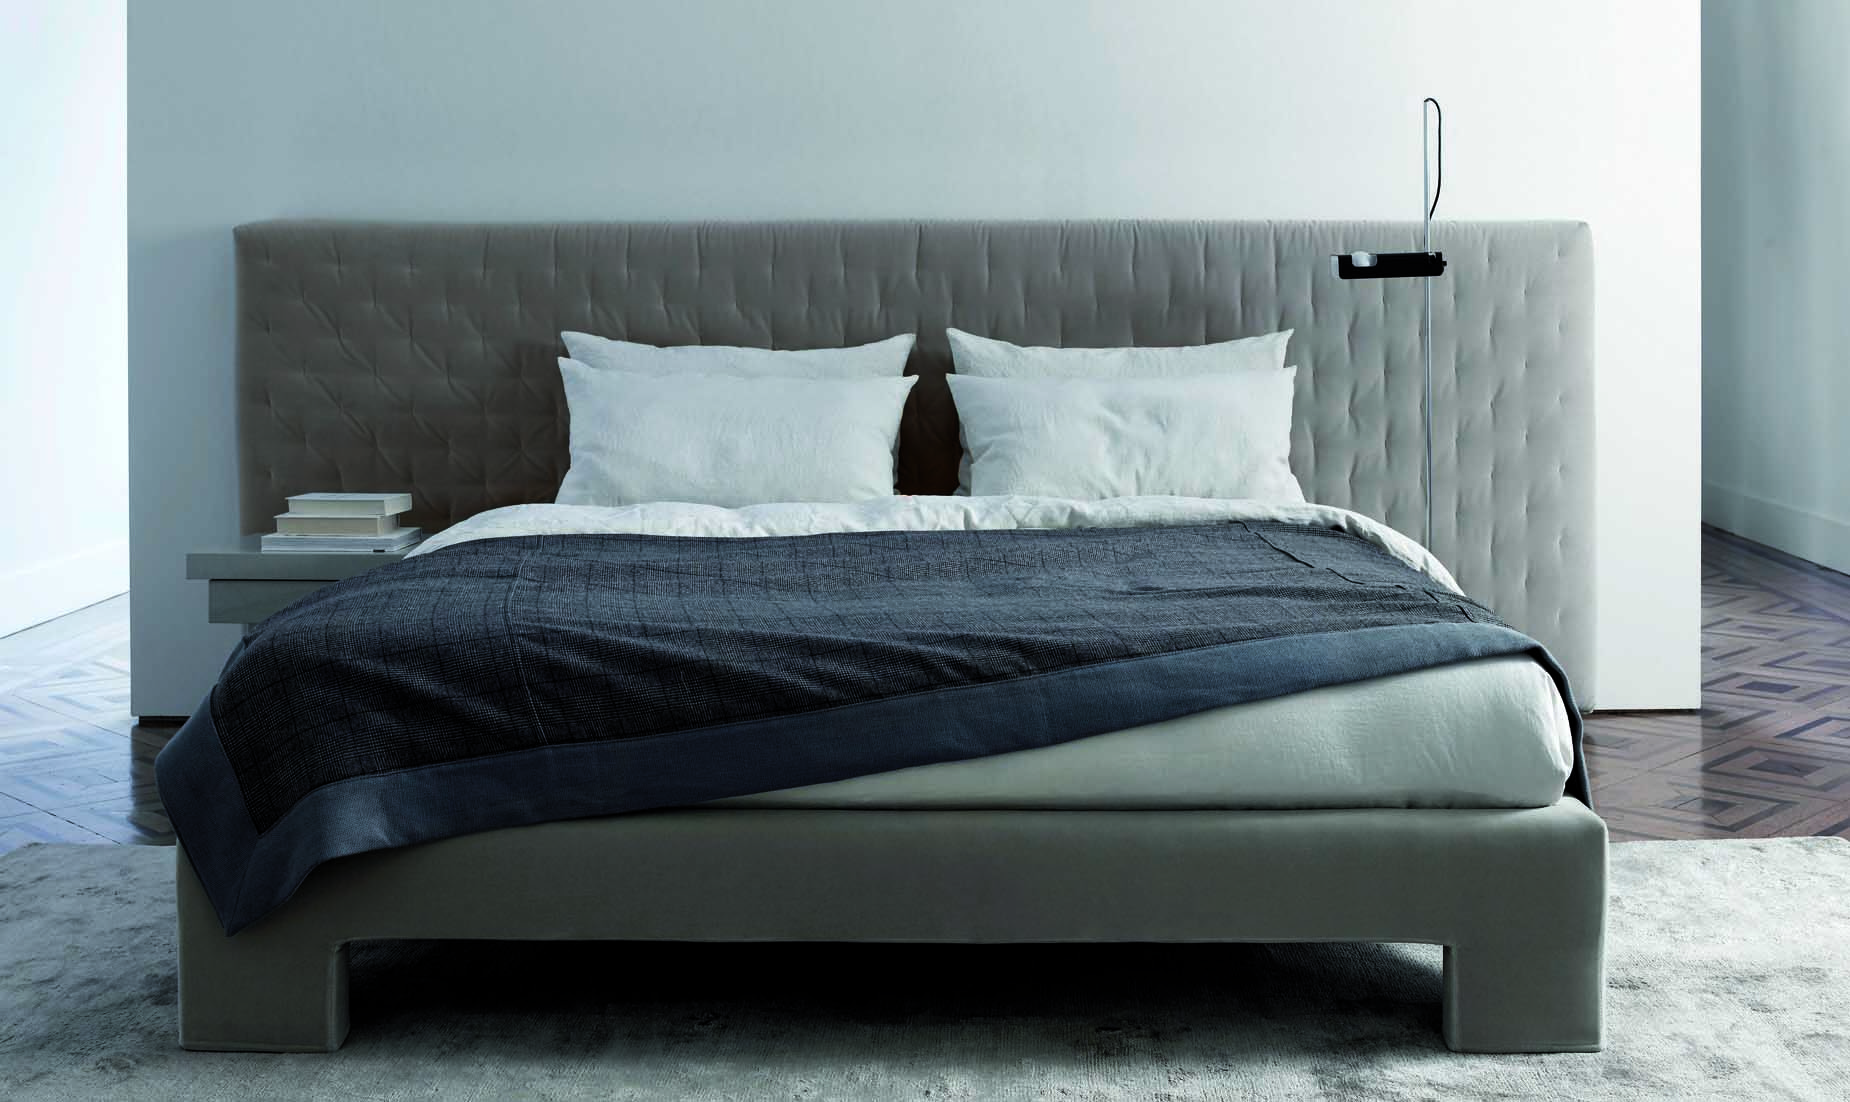 MERIDIANI I TUYO Bed I Low Headboard with Quilt finish and Base 15 with a Plain finish